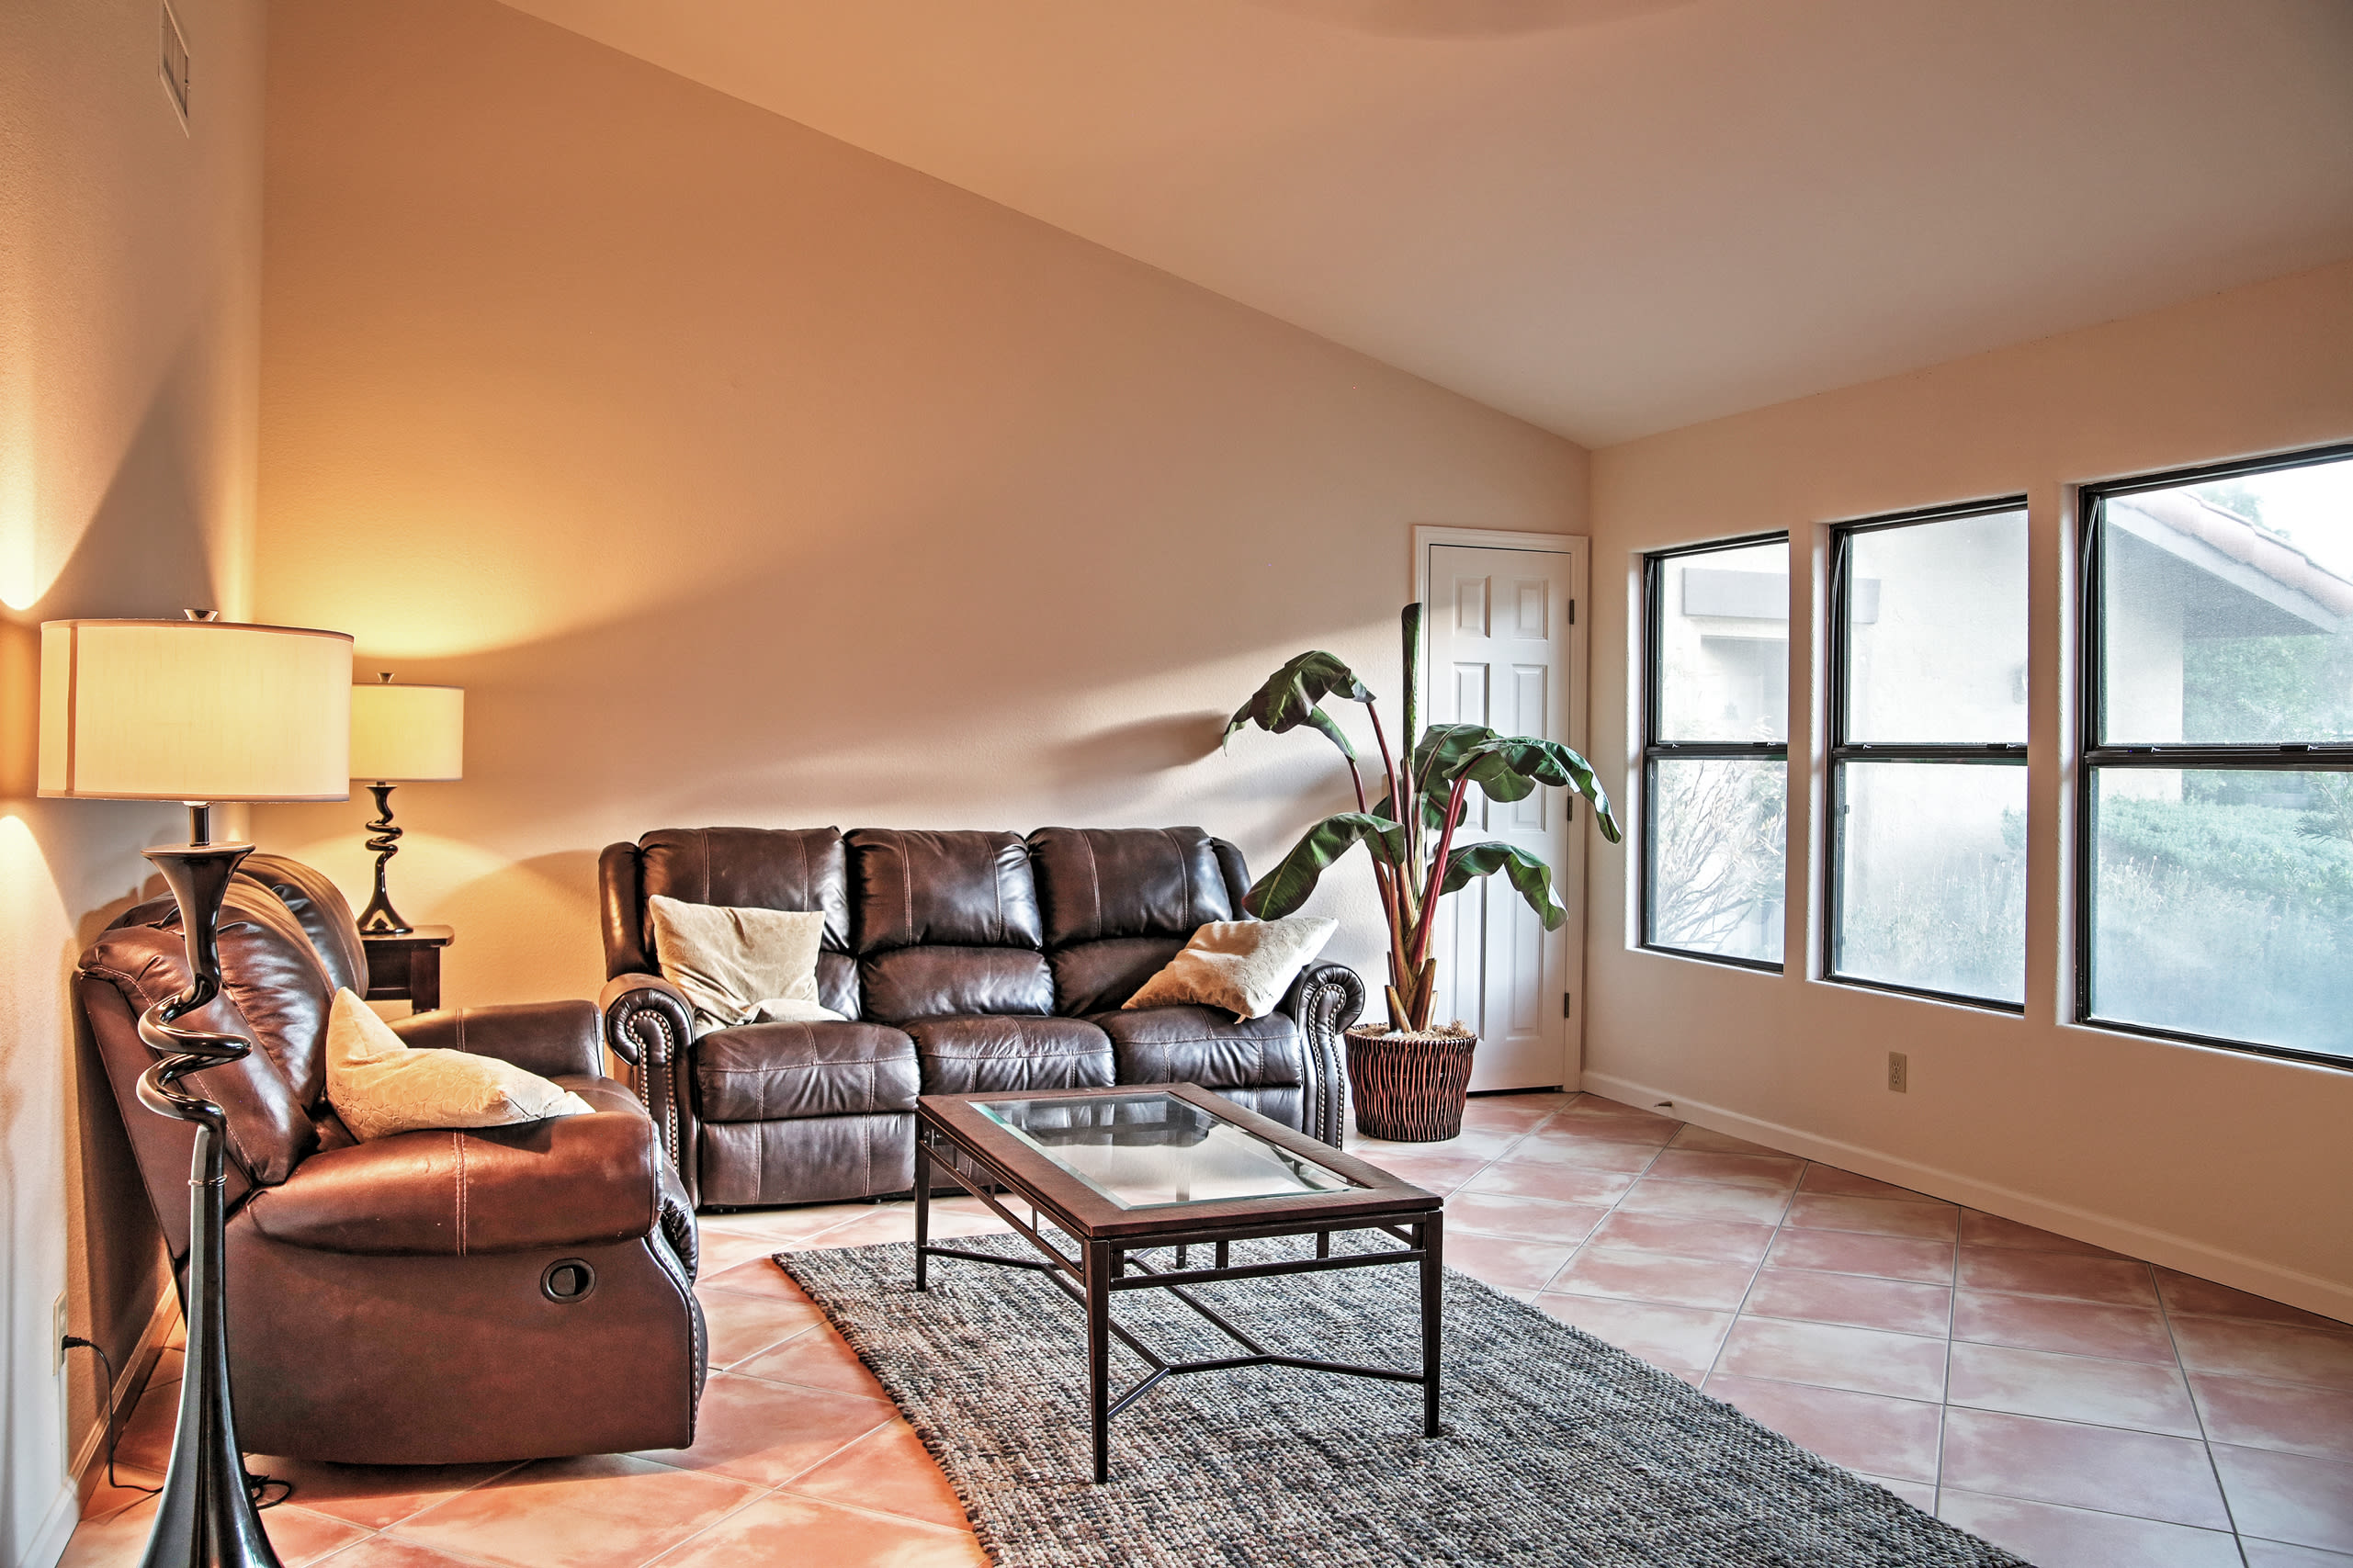 Relax on the cozy couches while enjoying beautiful views of the golf course.